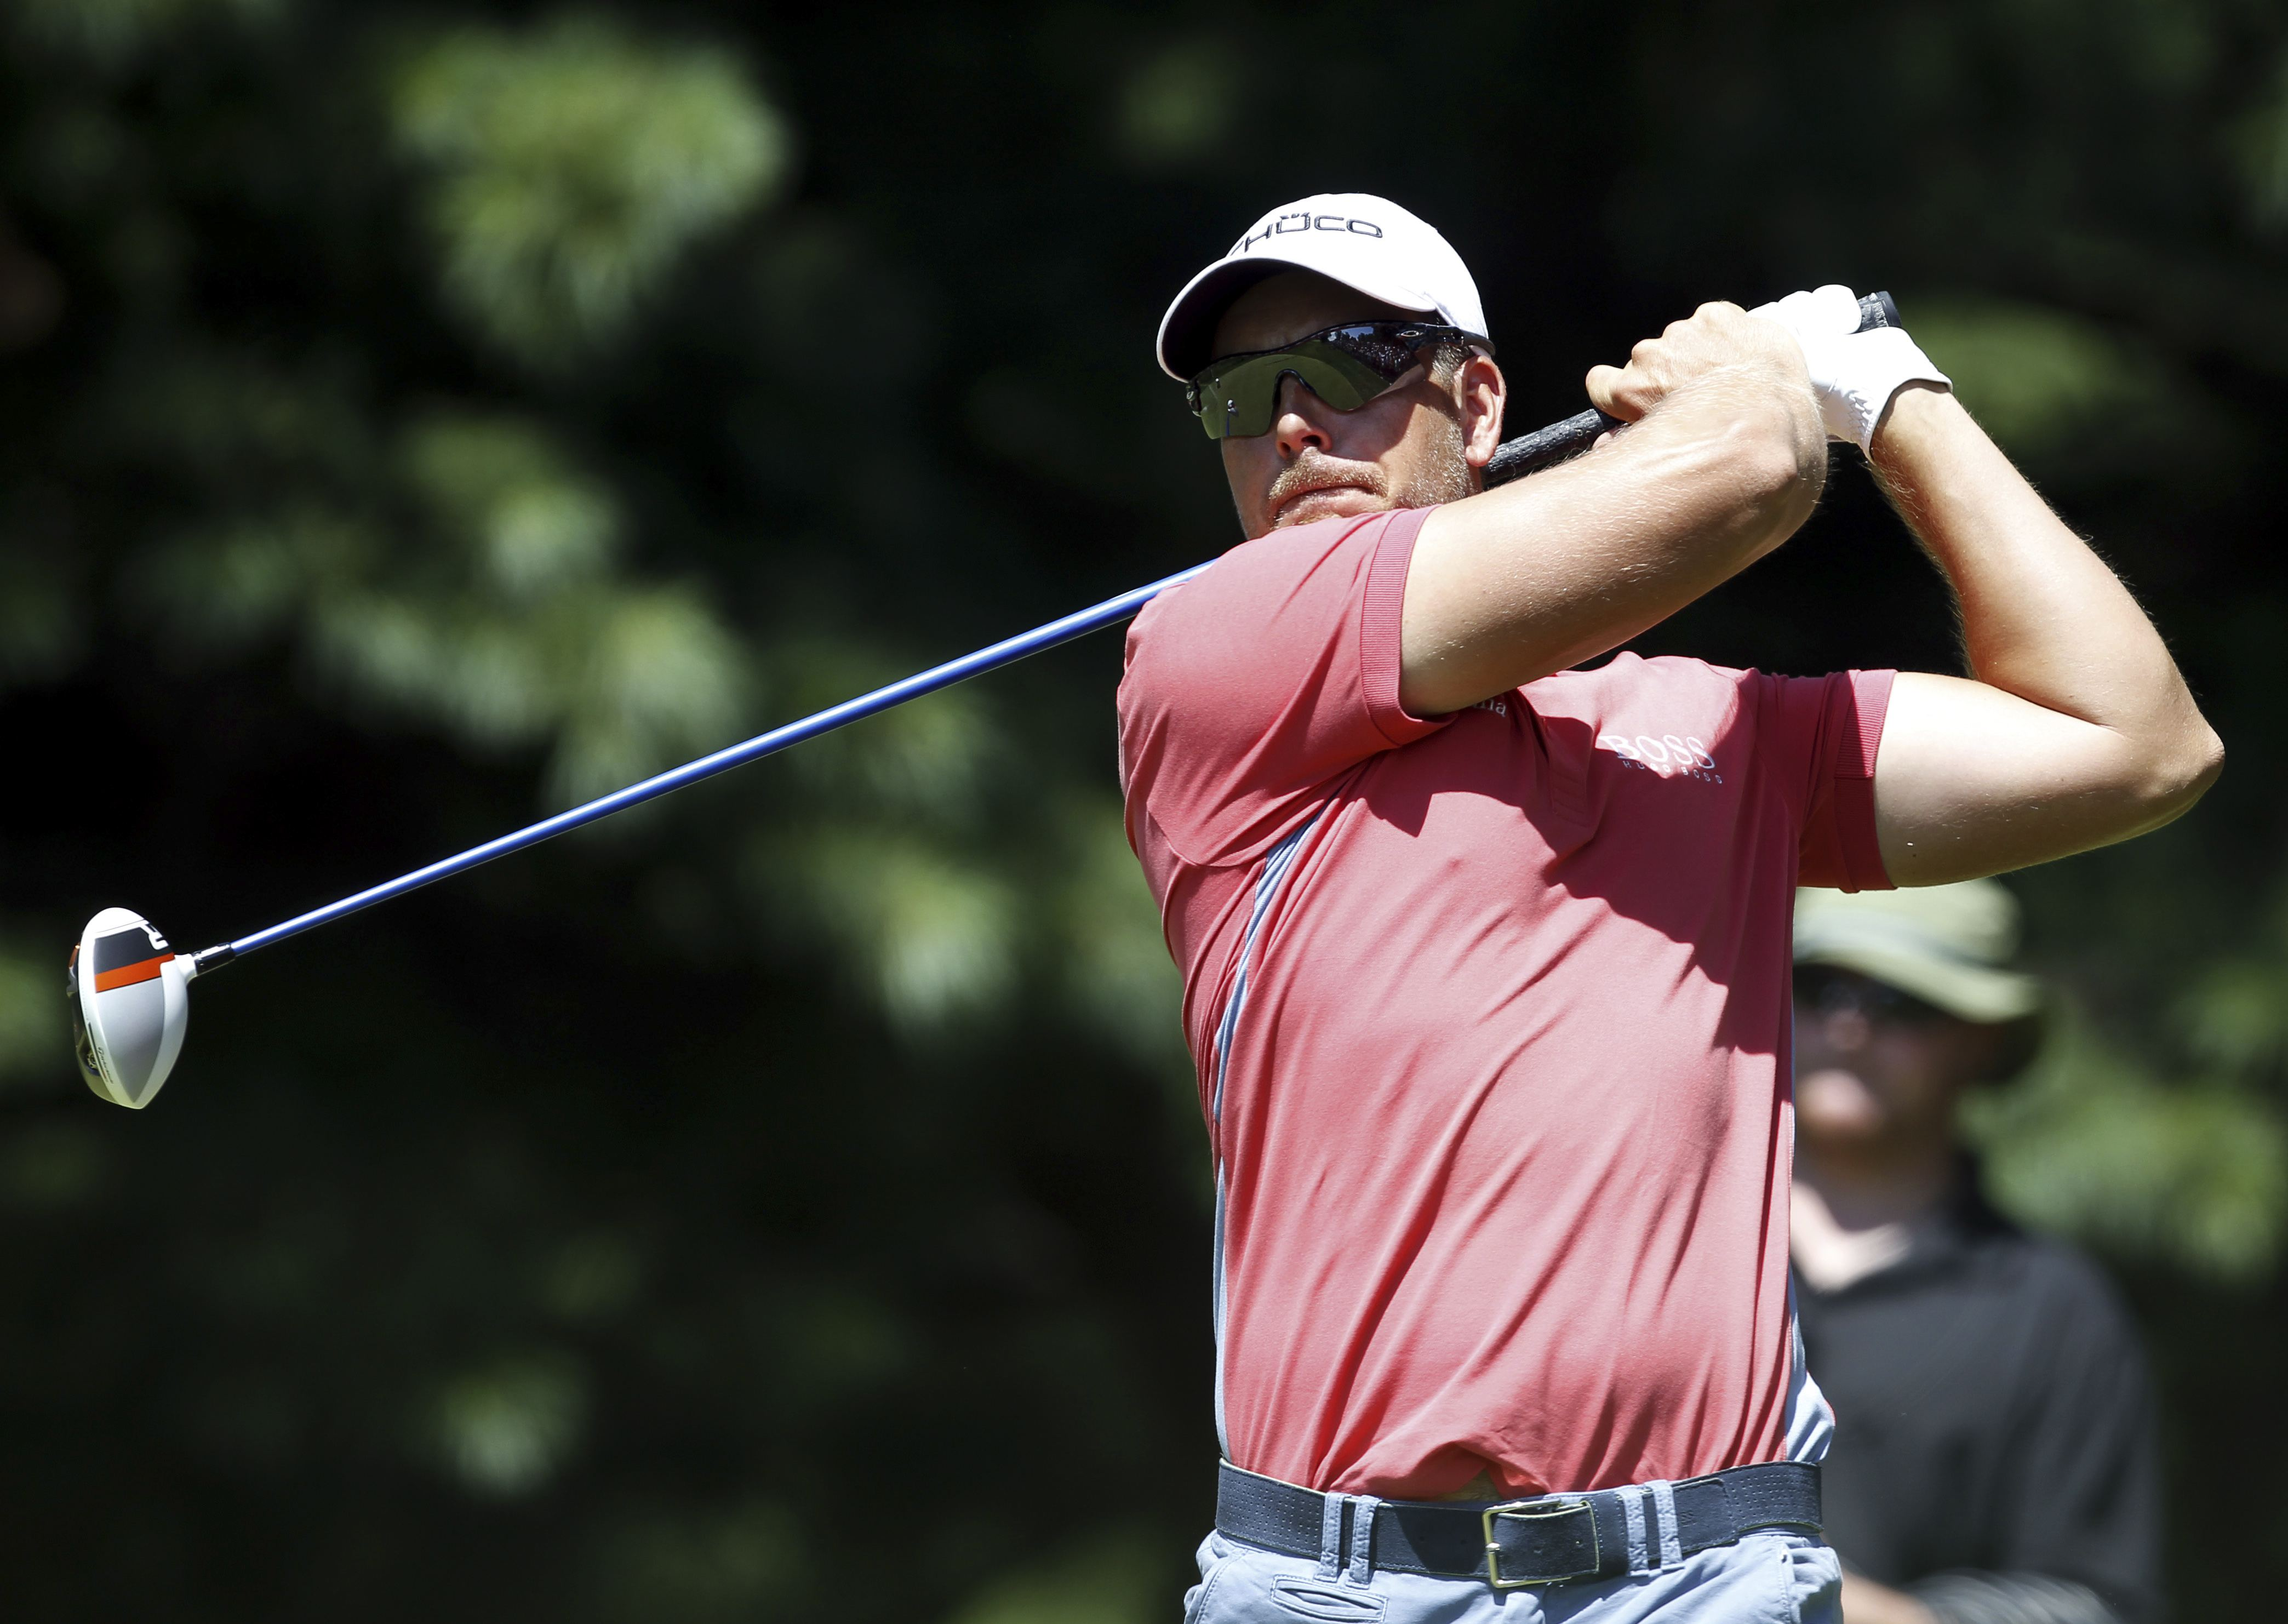 Henrik Stenson will edge out Tiger Woods and claim the US PGA title